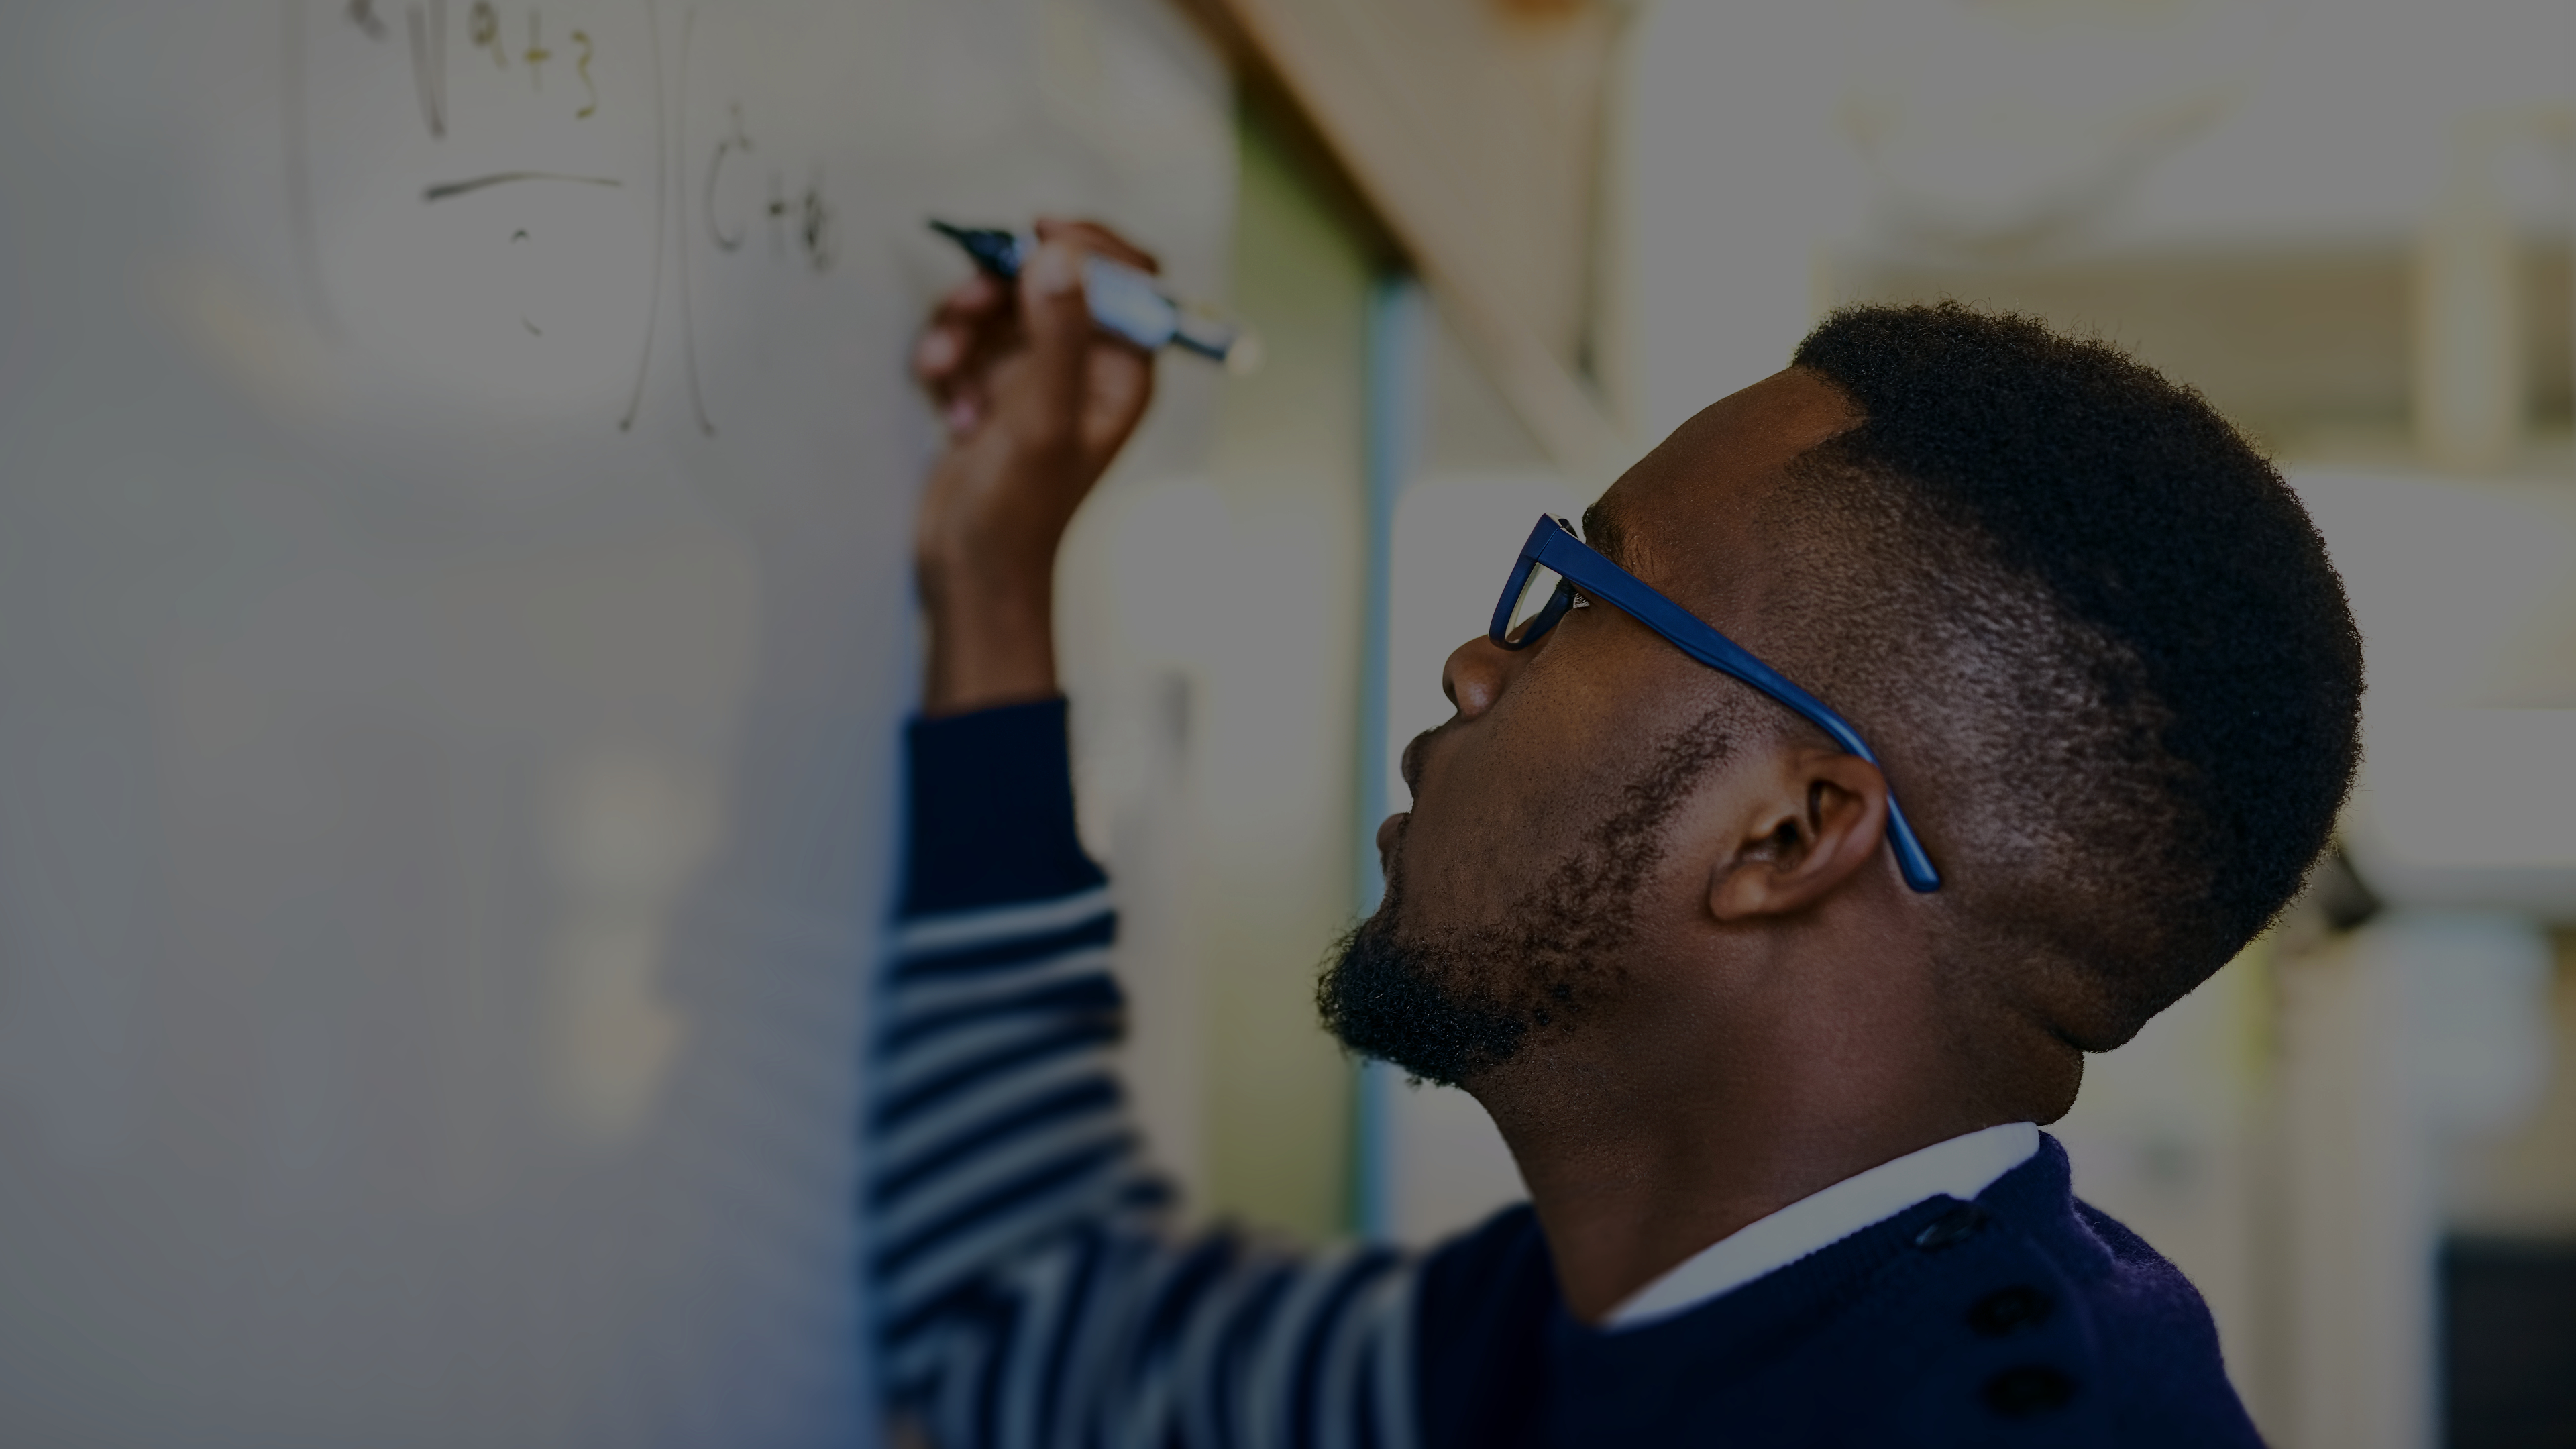 Photo of a student writing mathematical equations on a whiteboard.